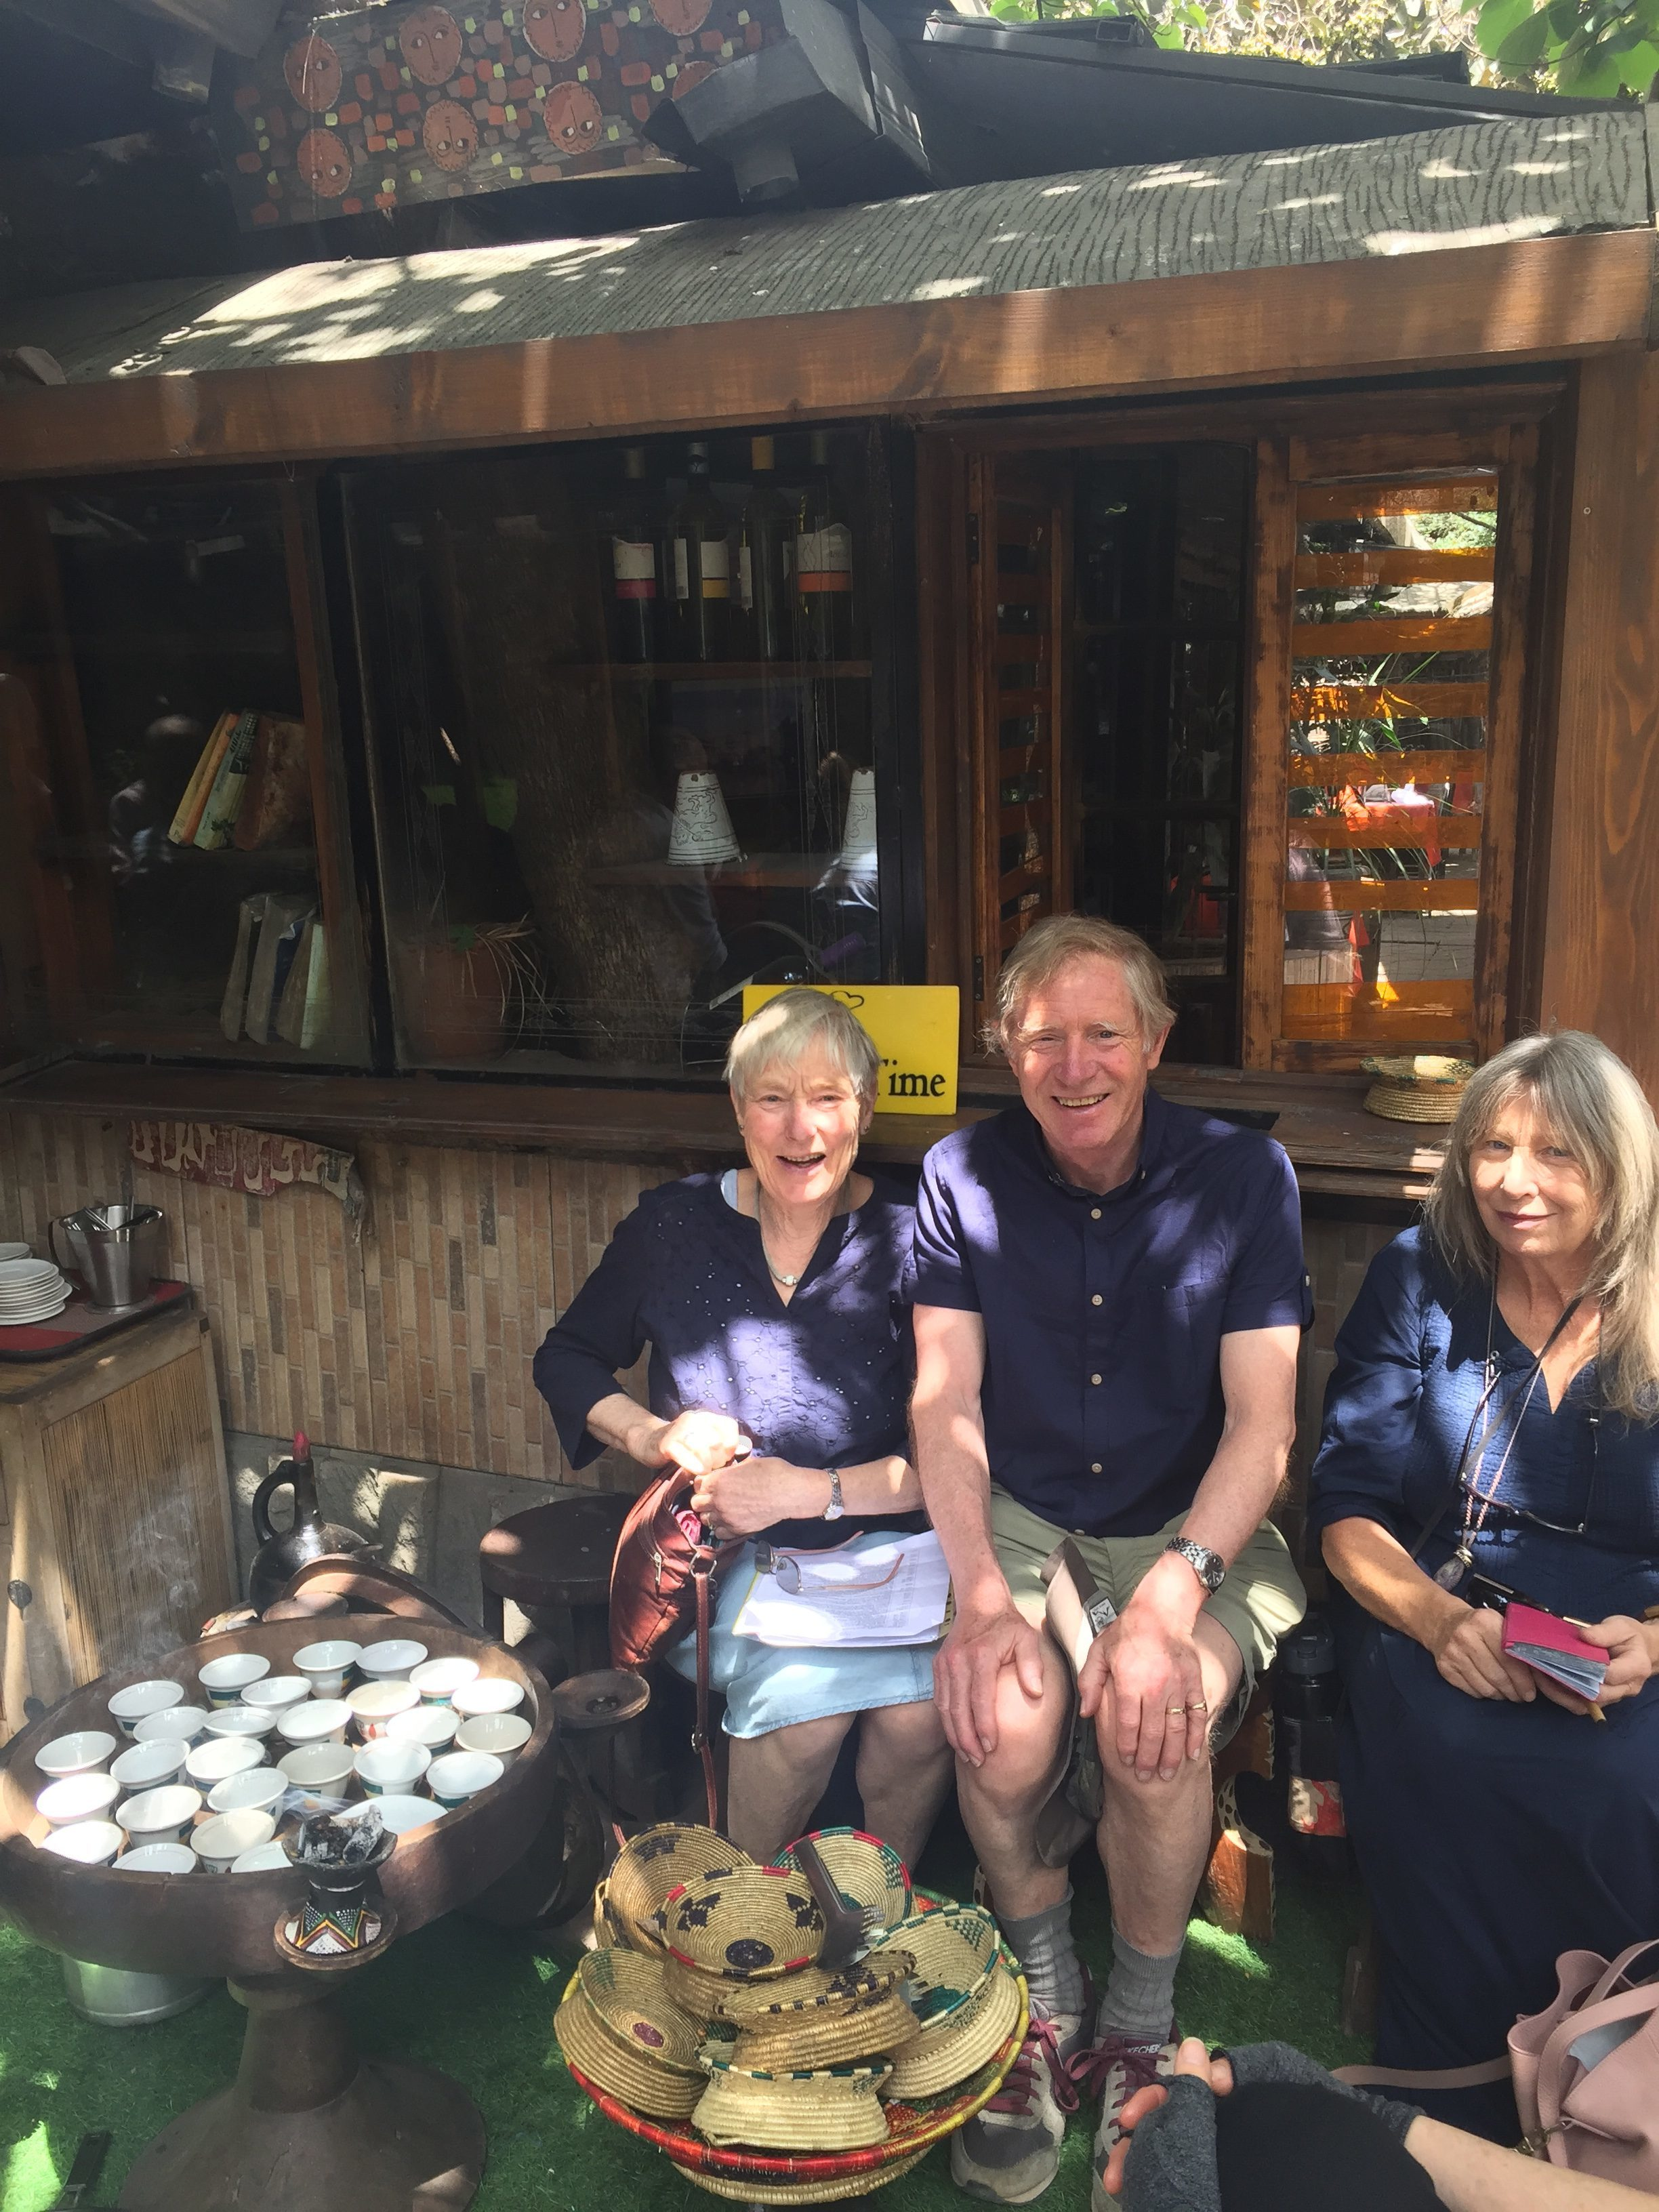 Coffee-ceremony-at-National-Museum-Addis-Ababa-Diane-and-Trevor-Orr-with-Mary-OLeary.JPG#asset:13187